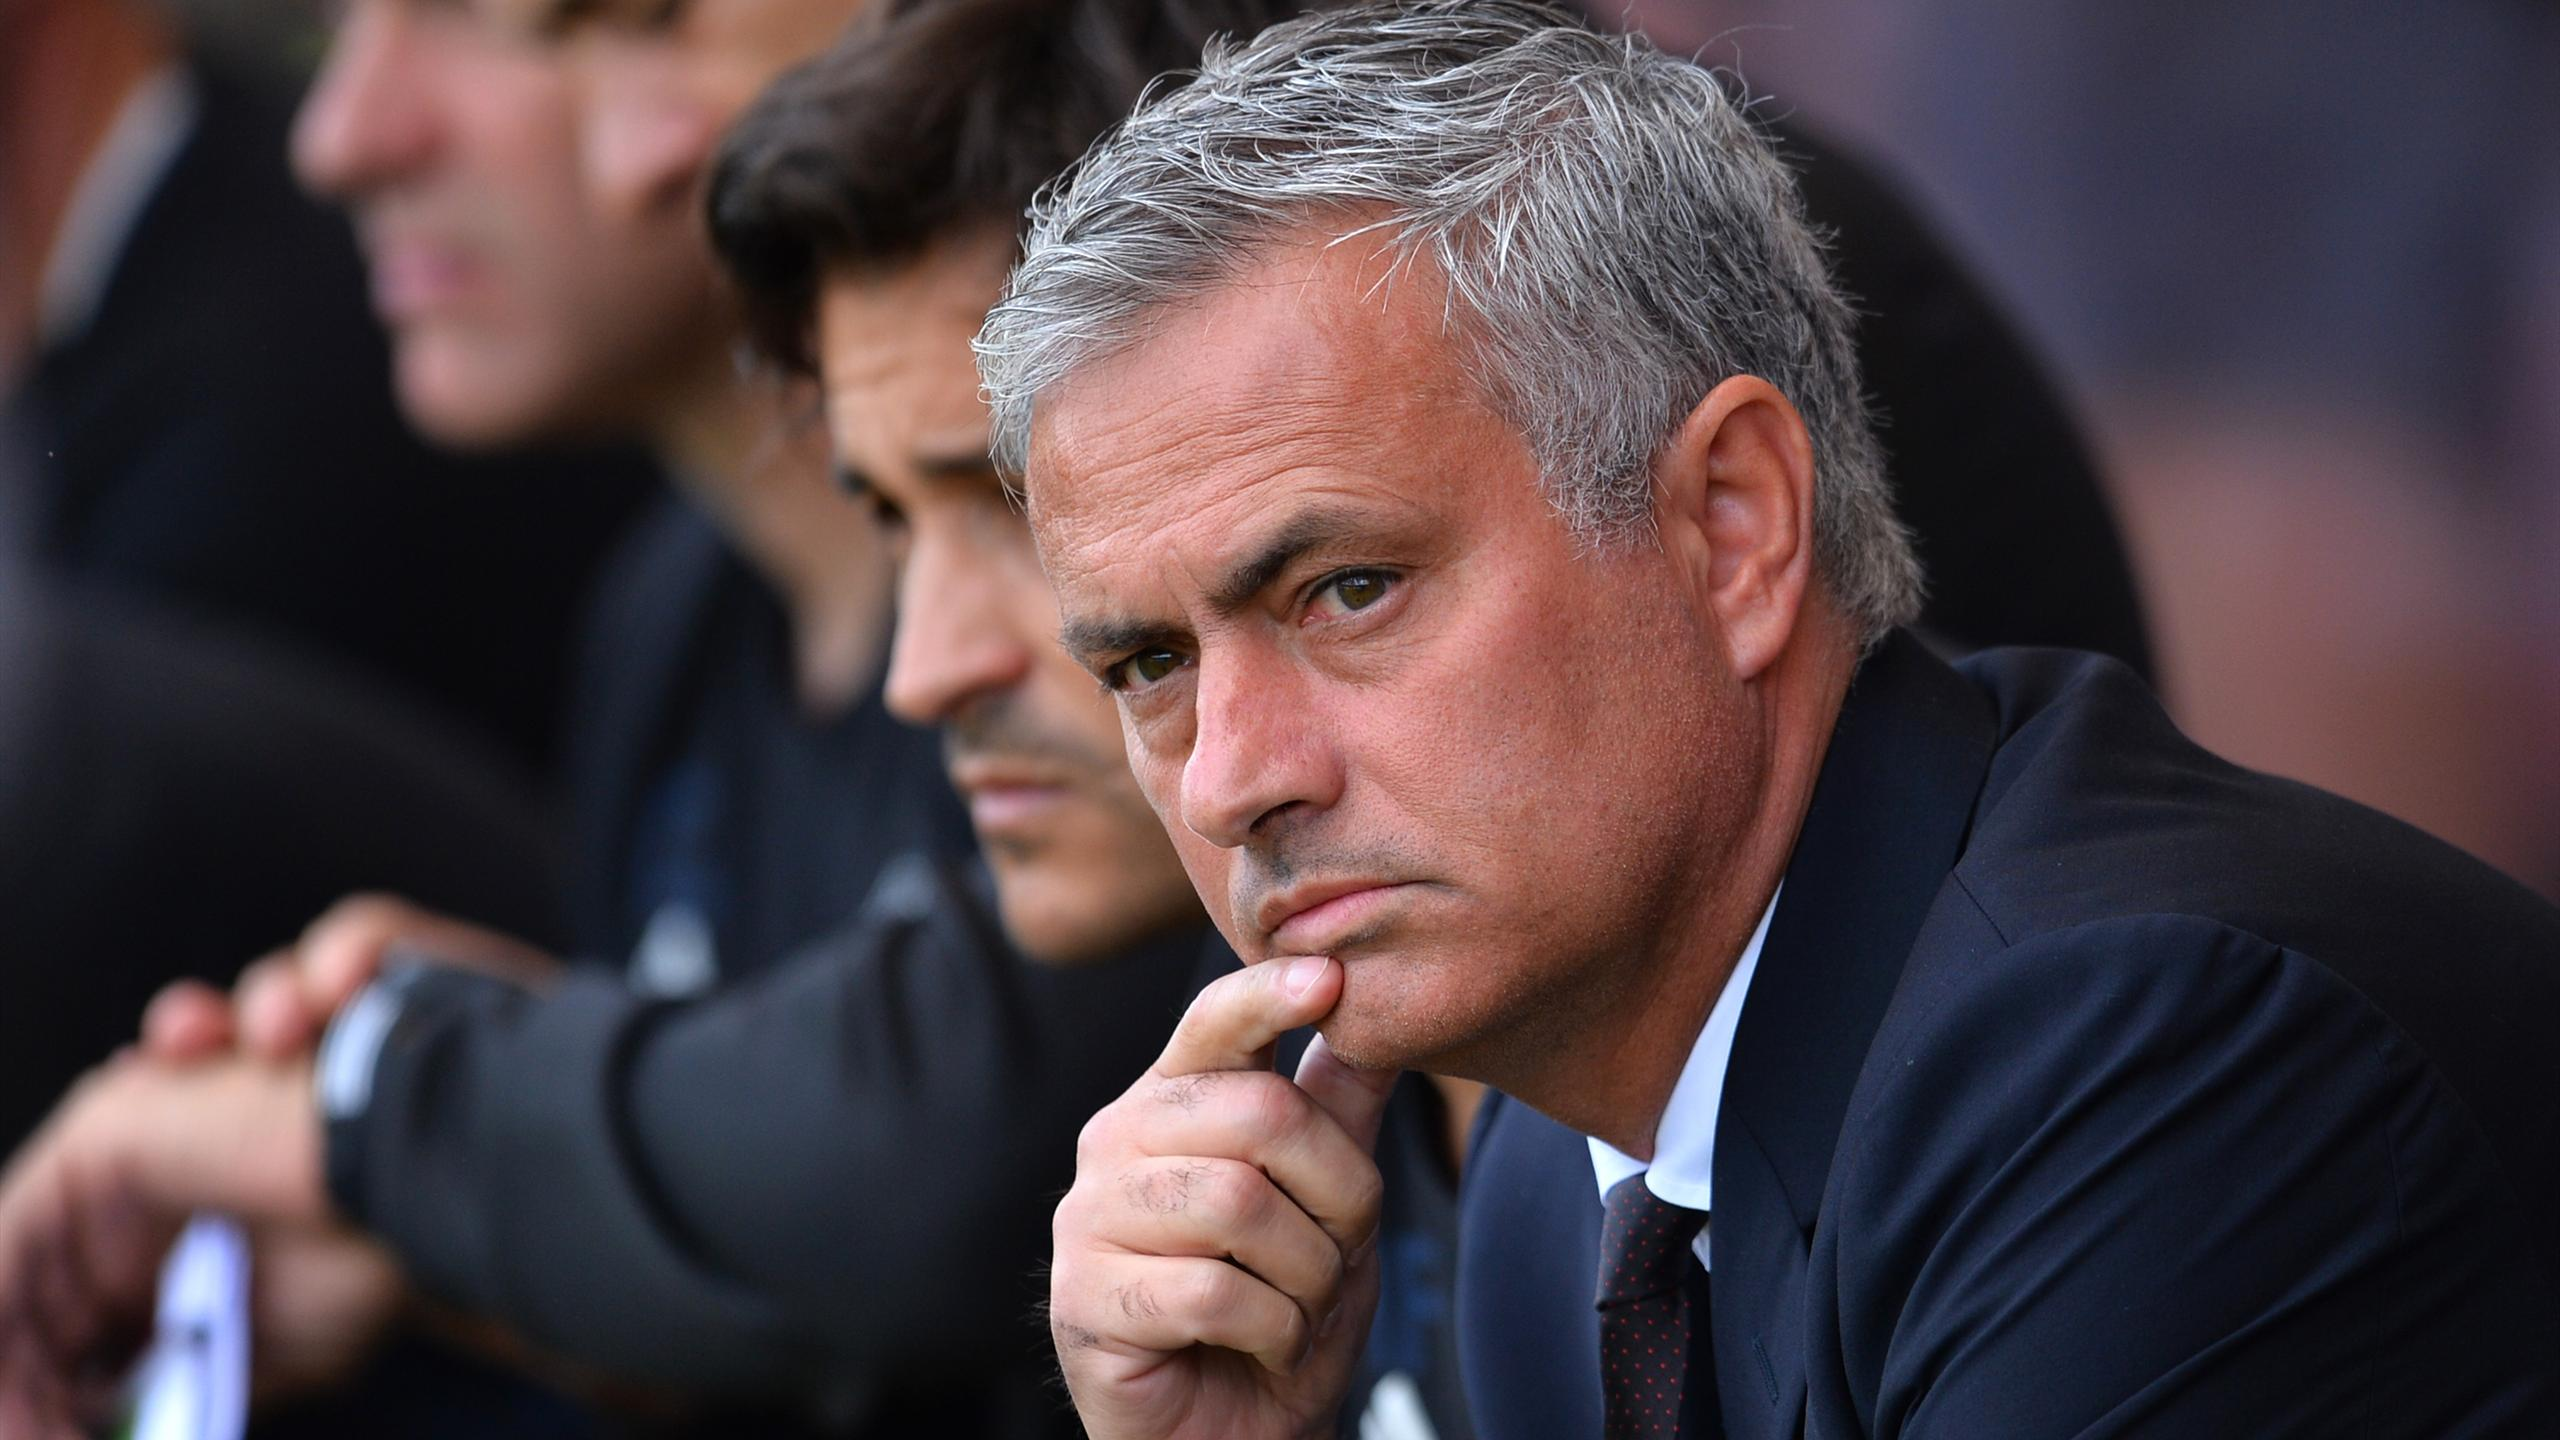 Manchester United's Portuguese manager Jose Mourinho takes his seat for the English Premier League football match between Bournemouth and Manchester United at the Vitality Stadium in Bournemouth, southern England on August 14, 2016.